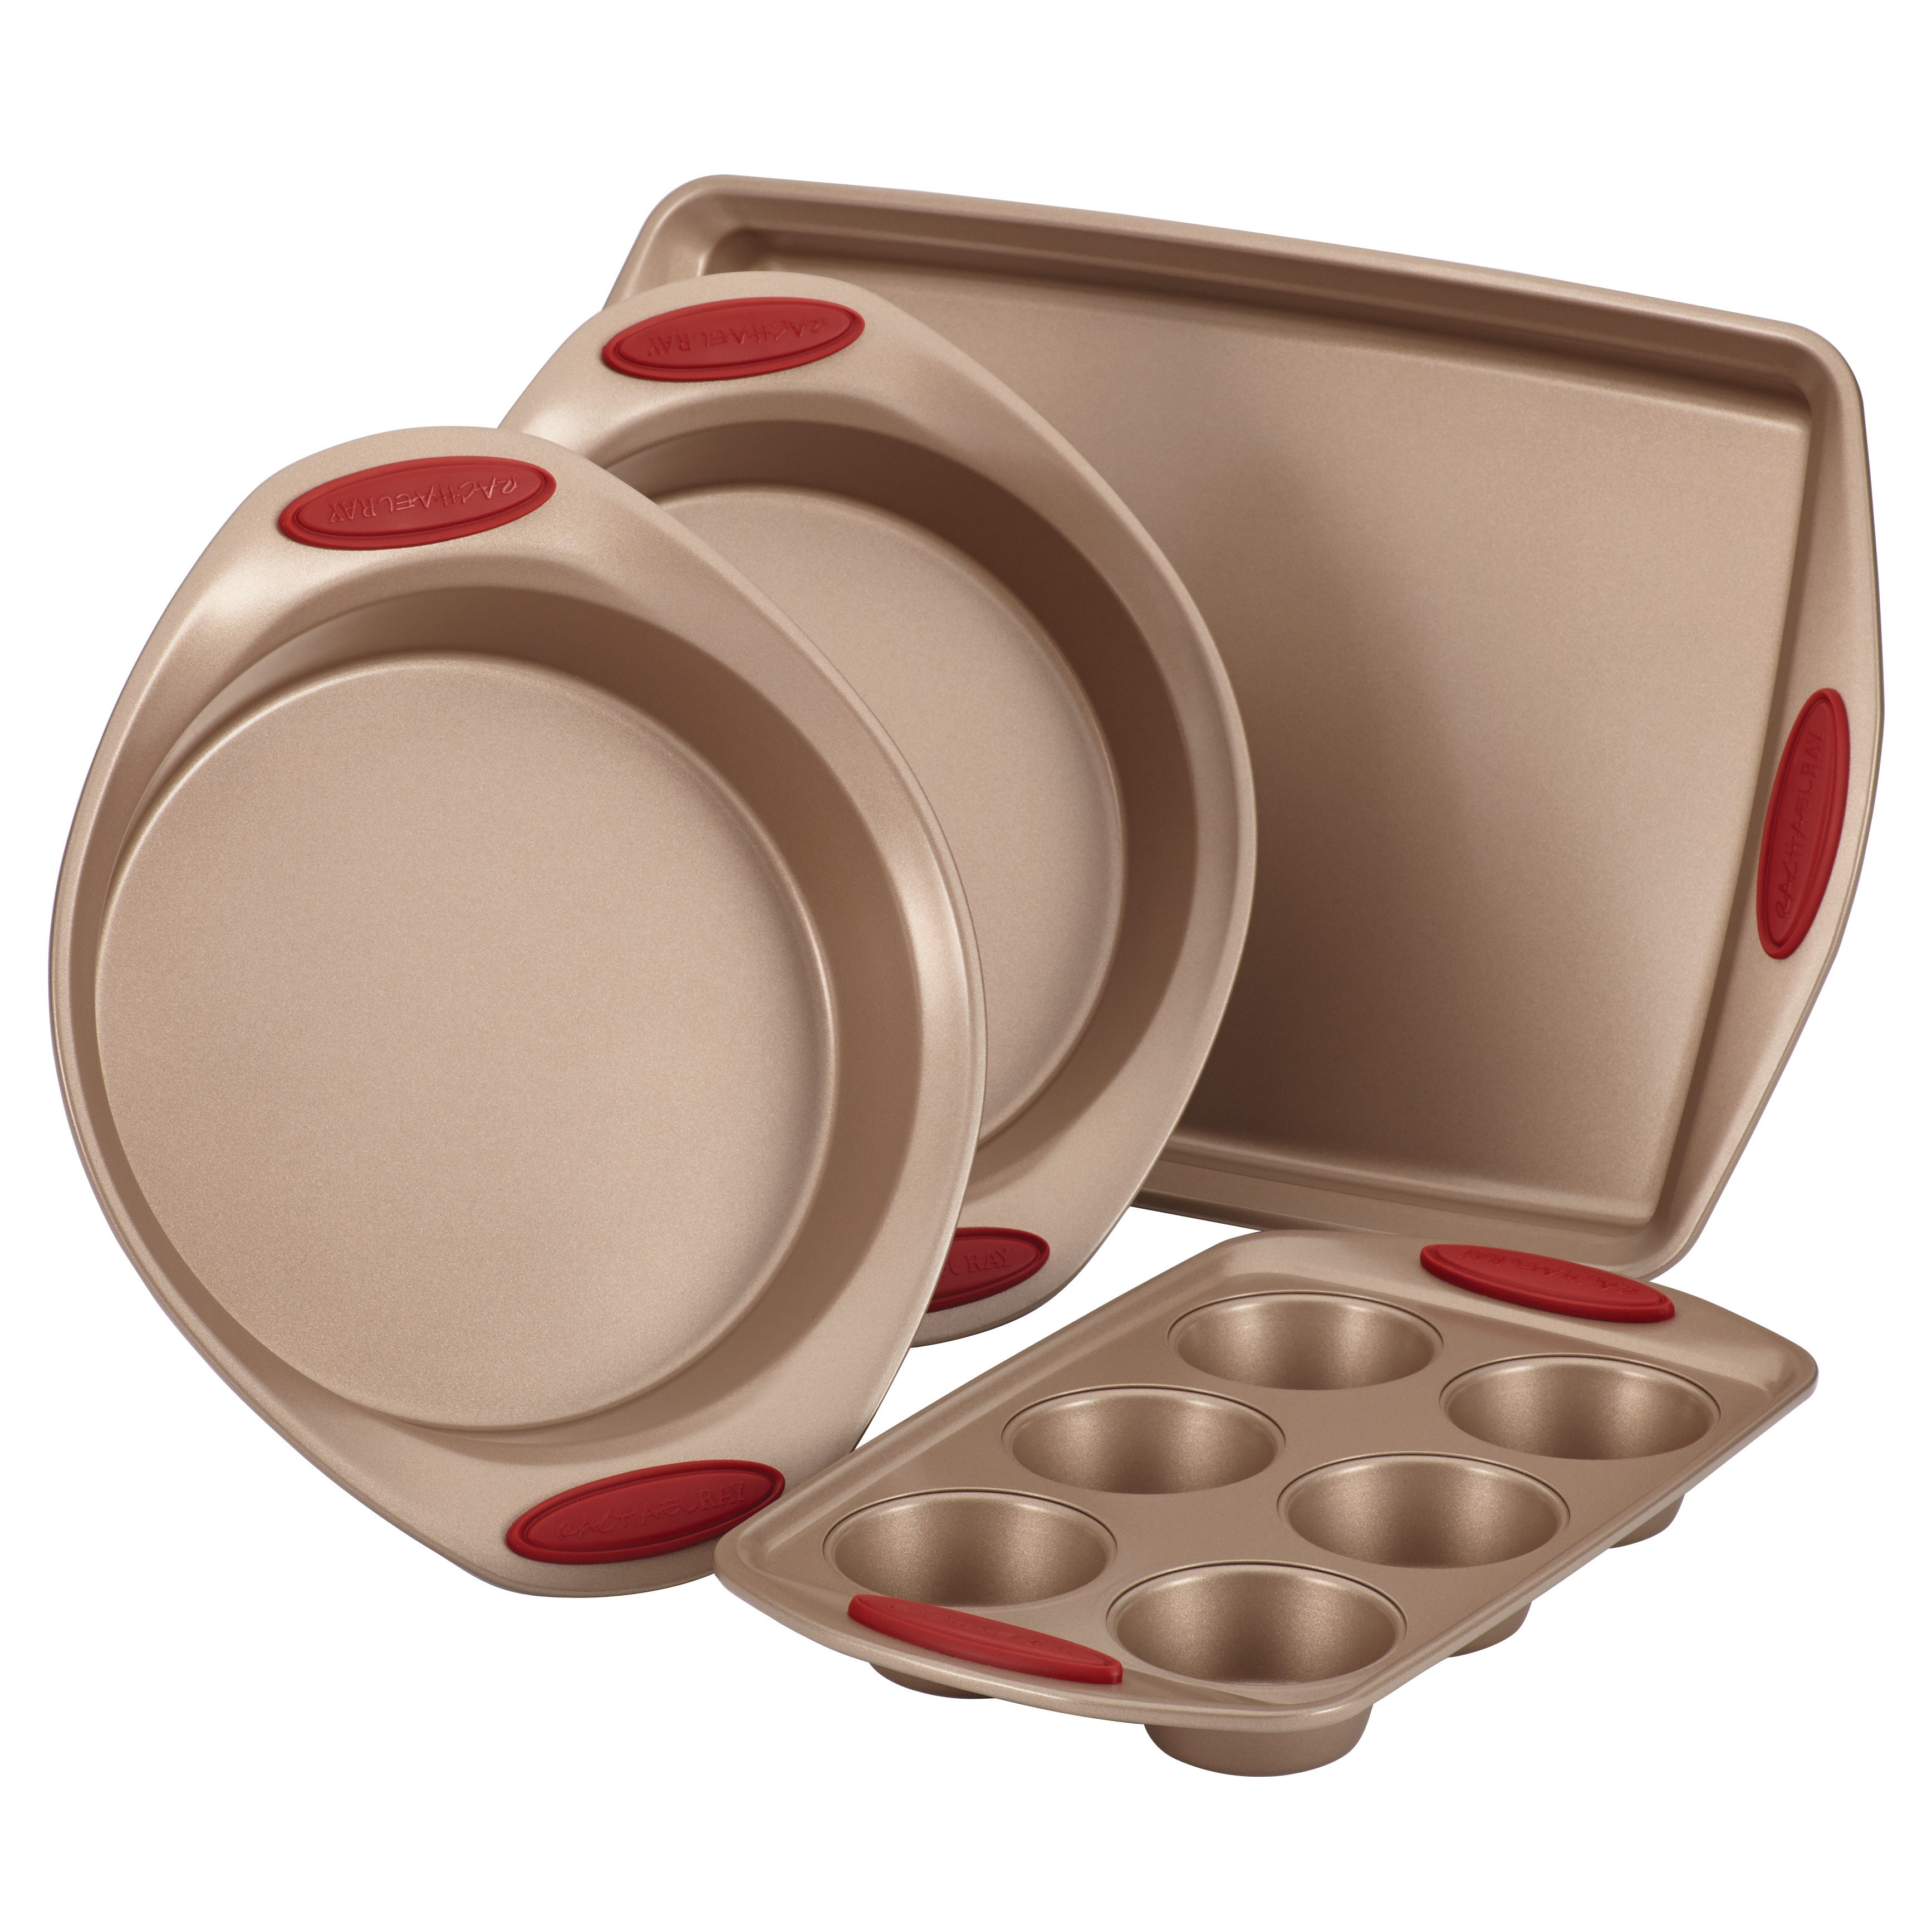 Rachael Ray Cucina Nonstick Bakeware 4-Piece Set, Latte Brown with Cranberry Red Handle Grips